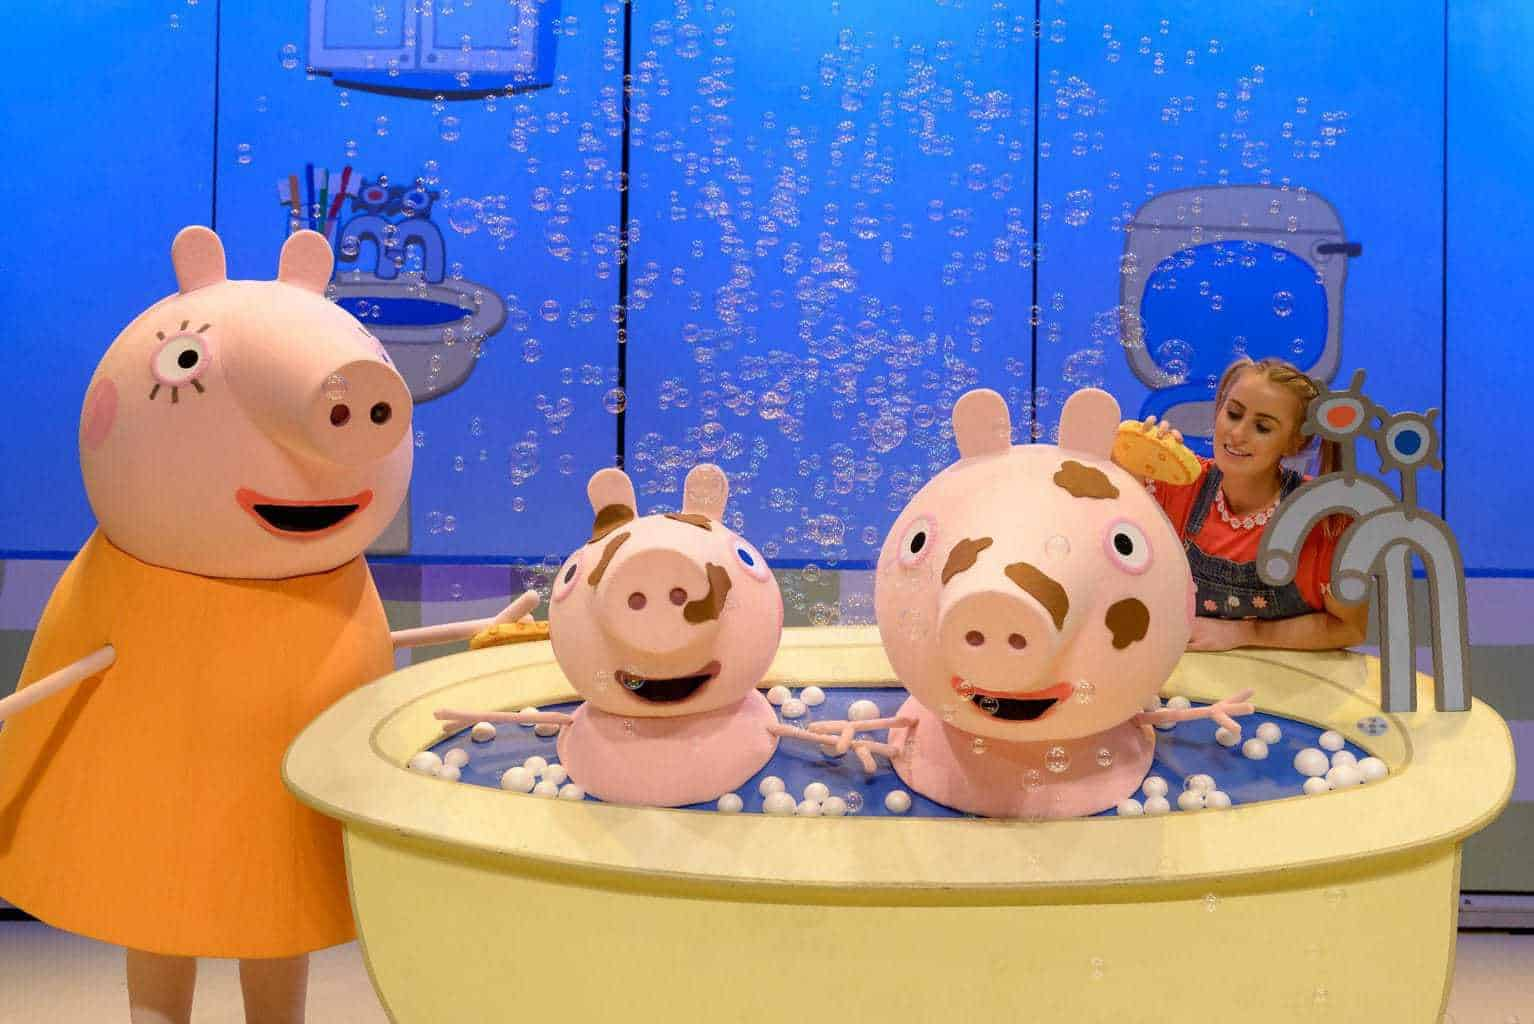 Peppa Pig's Surprise-Uk tour. Peppa and George in the bath surrounded by bubbles with Daisy and Mummy Pig